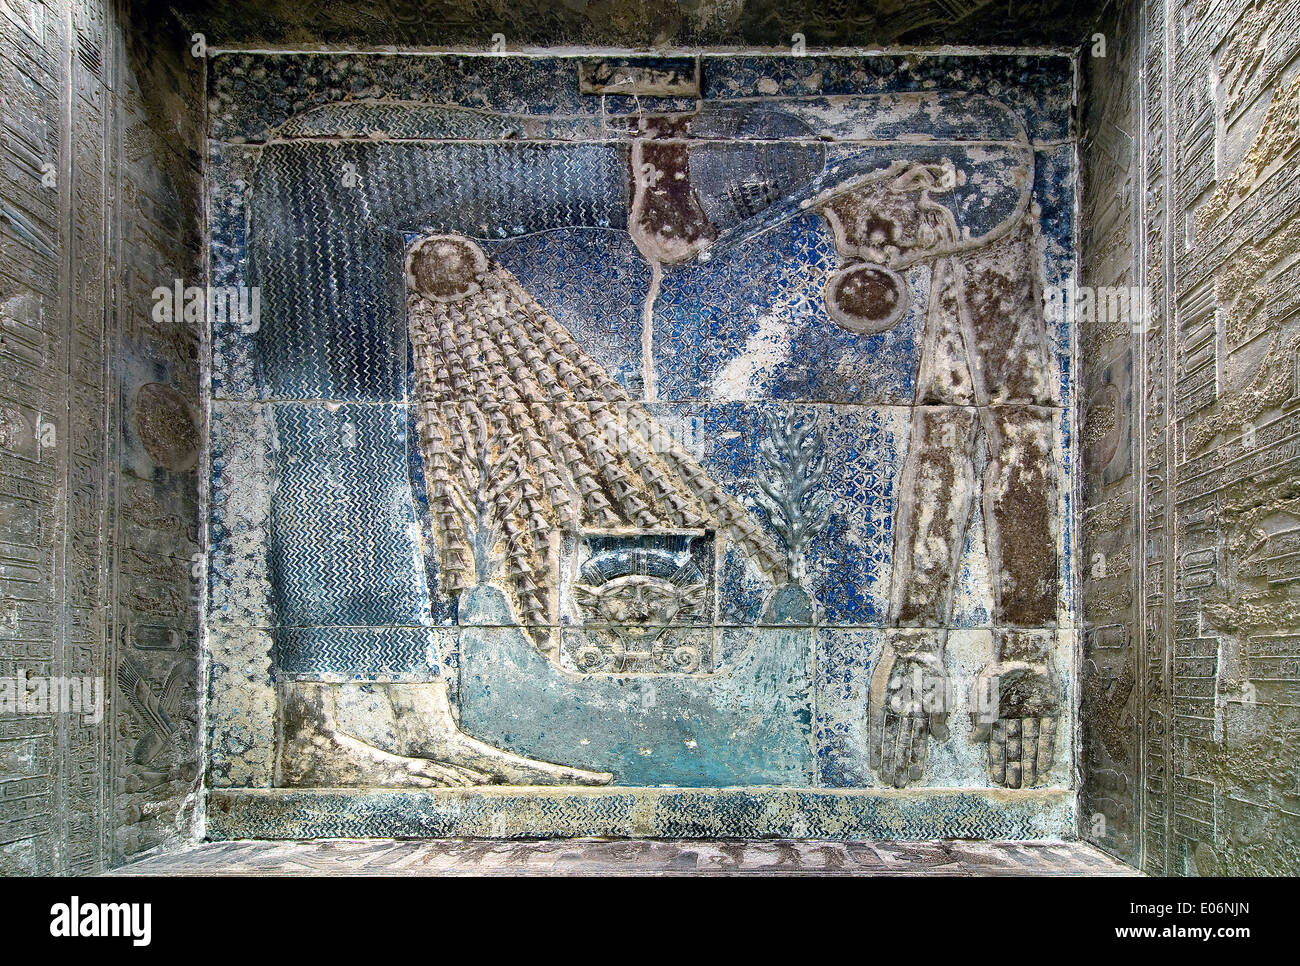 Egypt,Dendera,Ptolemaic temple of the goddess Hathor.View of ceiling with the goddess Nut. Stock Photo